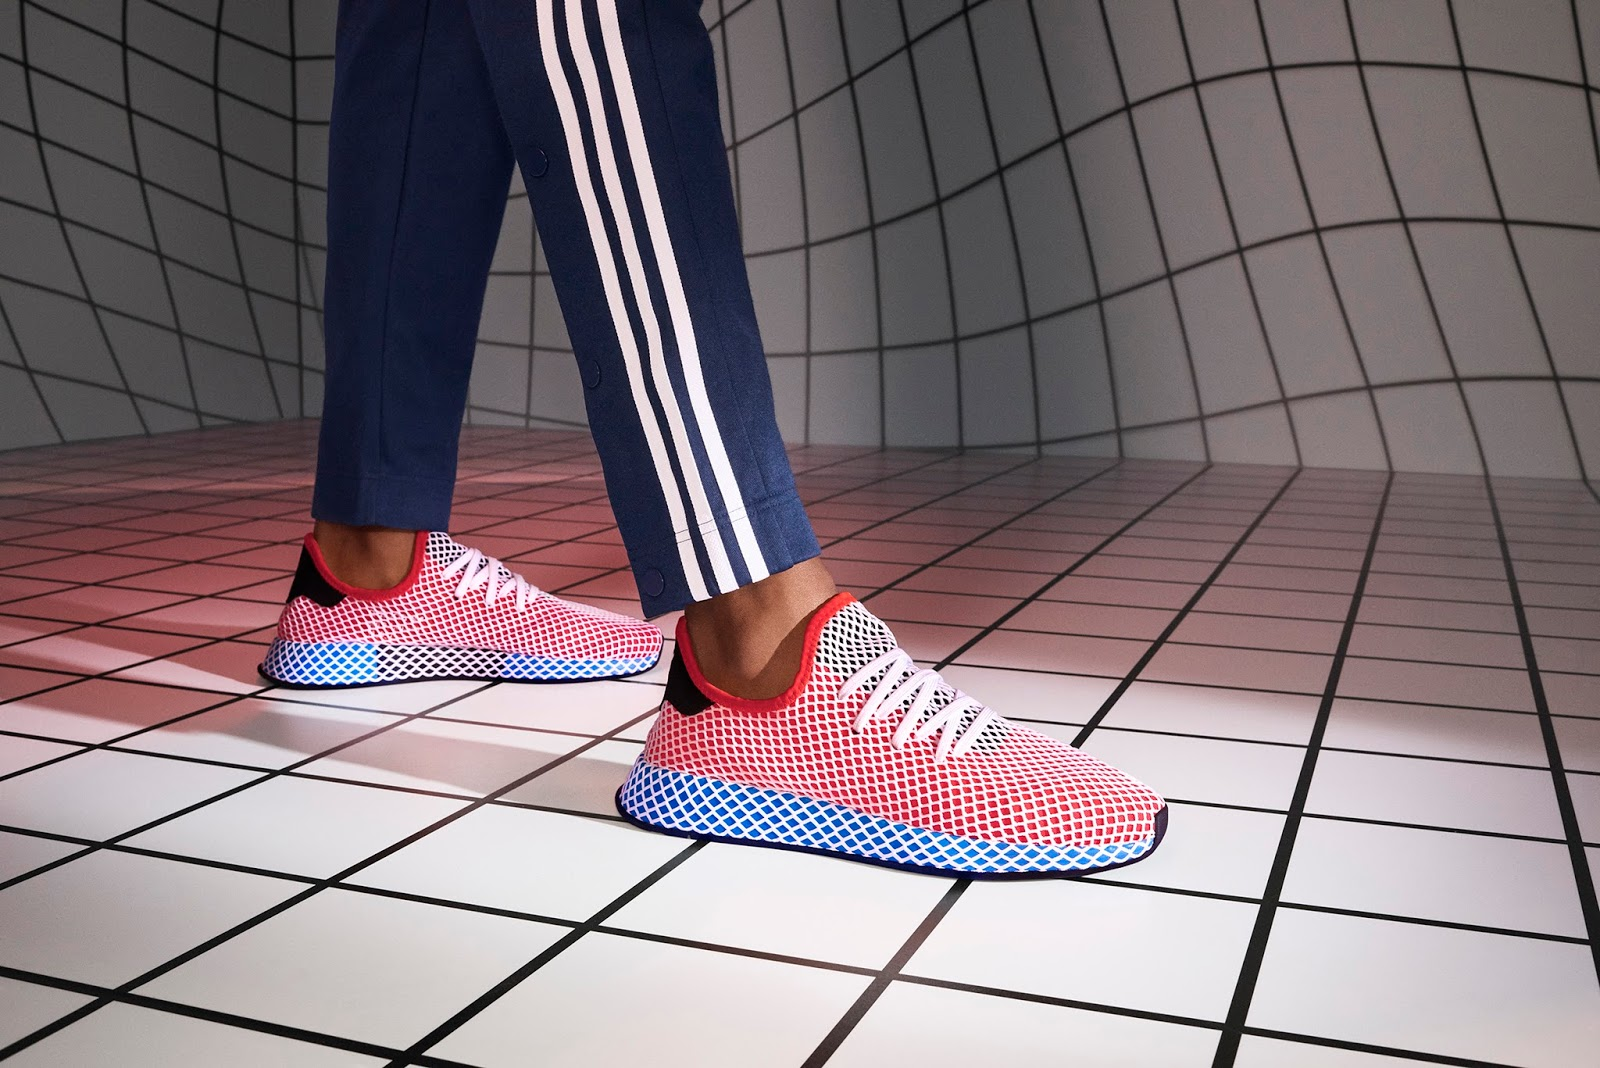 1d34691c25 adidas Originals introduces its newest sneaker, Deerupt — a contemporary  take on adidas heritage realized in a radically new look.